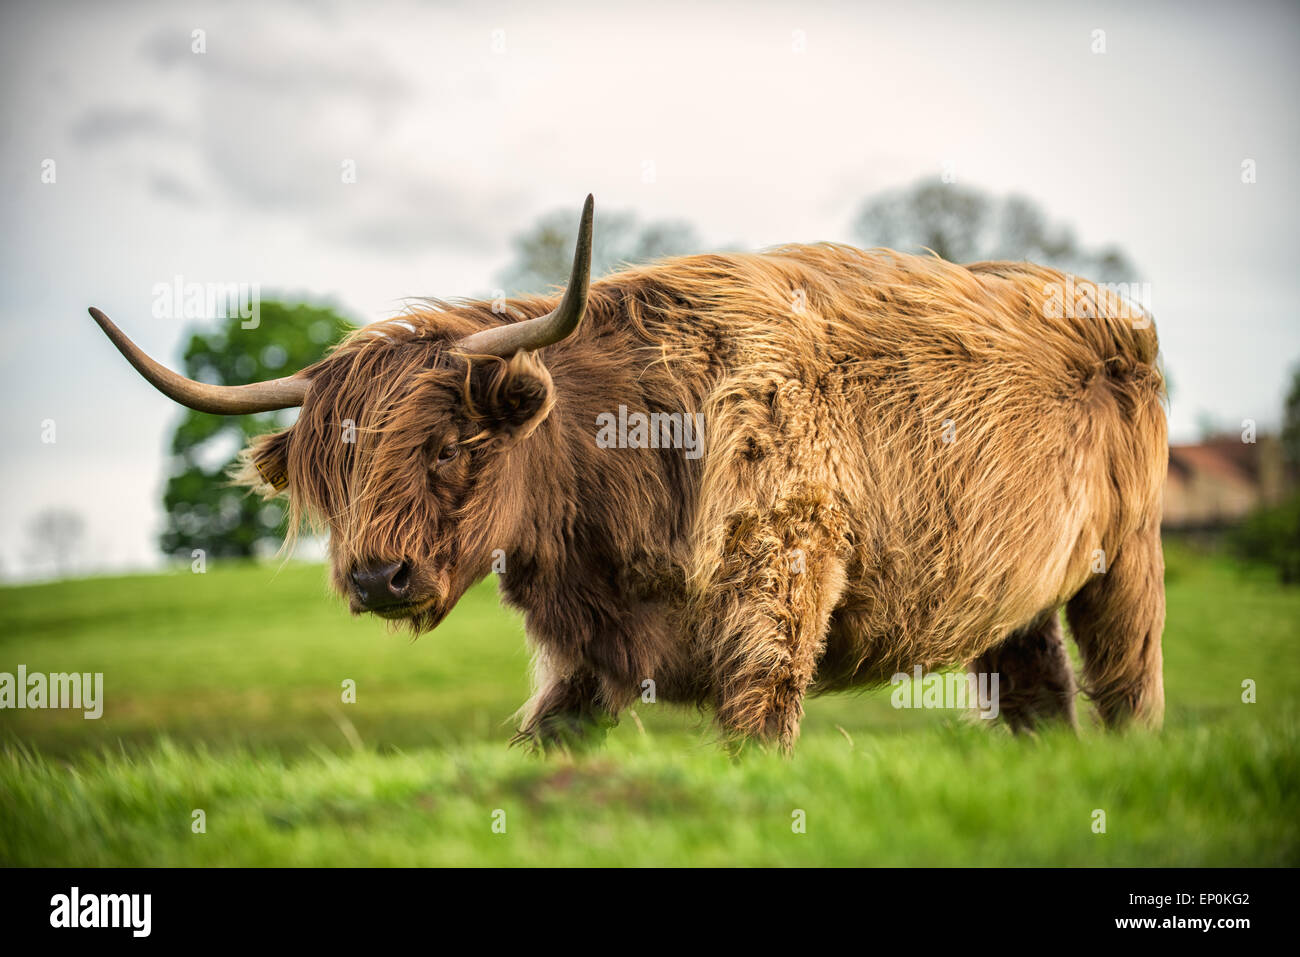 A Scottish Highland cow in a green field, on a windy day. Stock Photo